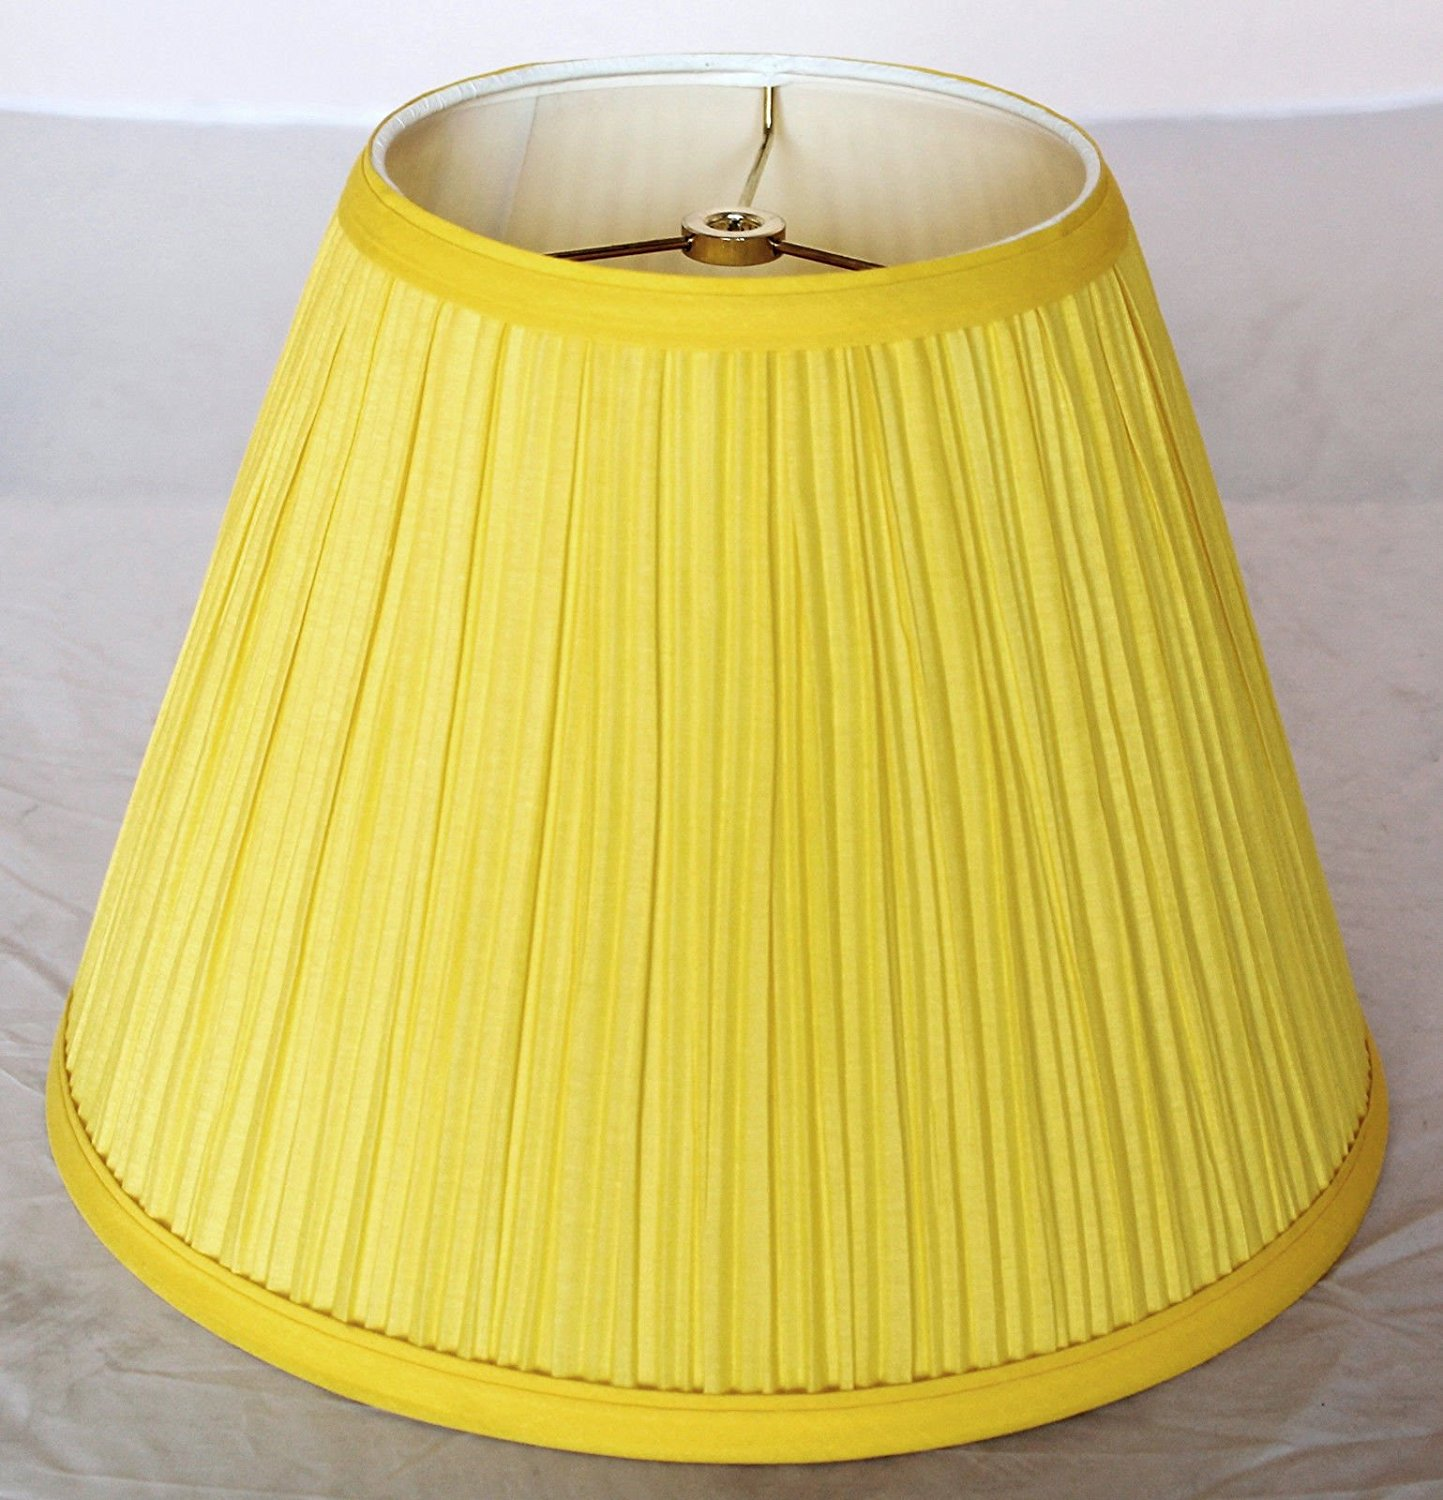 Get Quotations Usa Made In America By Lamp Shade Pro 9 Styles Colors Sizes 12